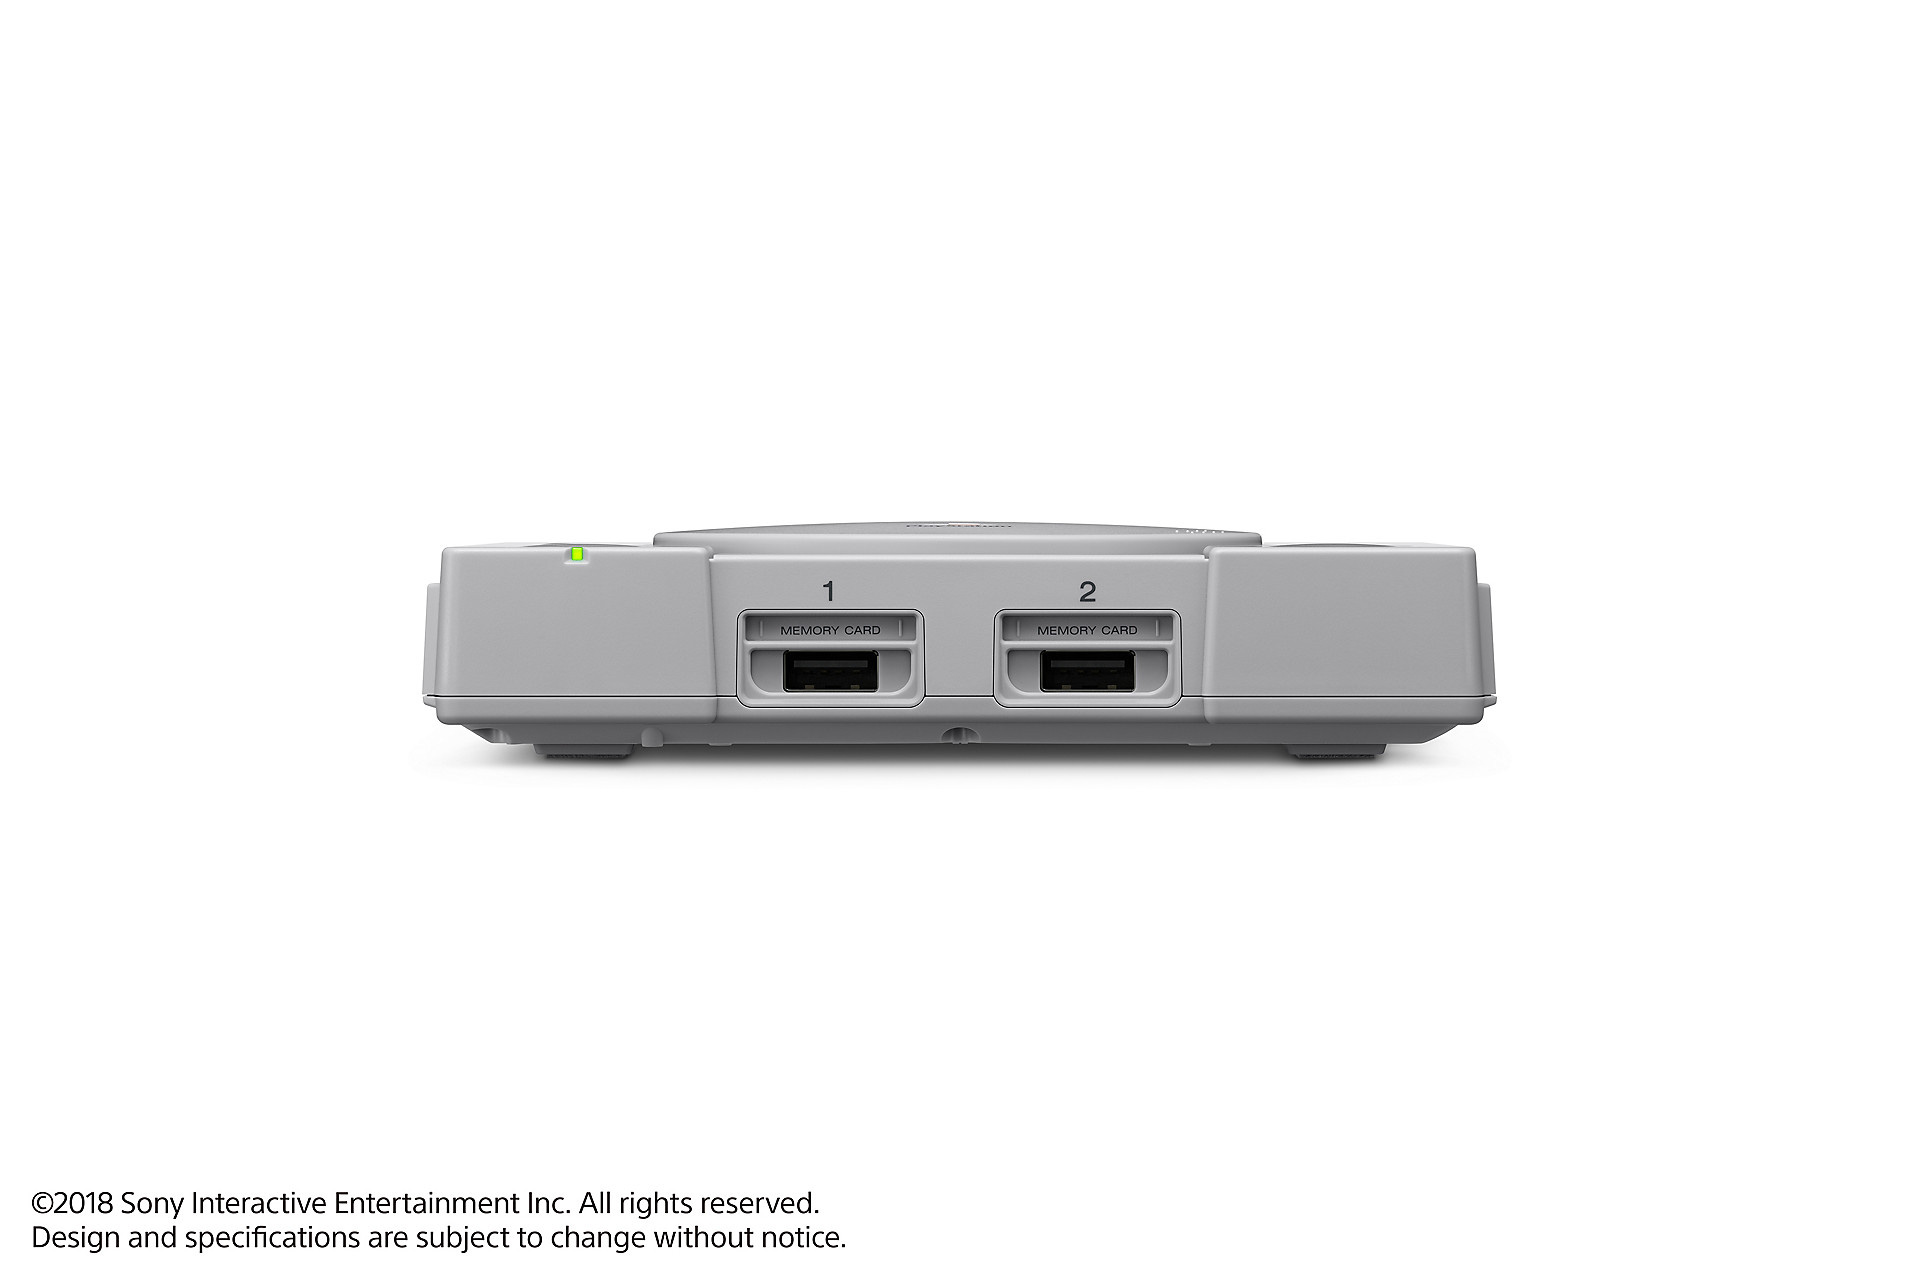 Playstation Classic A 100 Mini Ps1 With 20 Games Coming In Specification Of Parallel Port The Controllers Plug Into Usb Slots Located Same Place As Original Systems Controller Ports Sony Interactive Entertainment